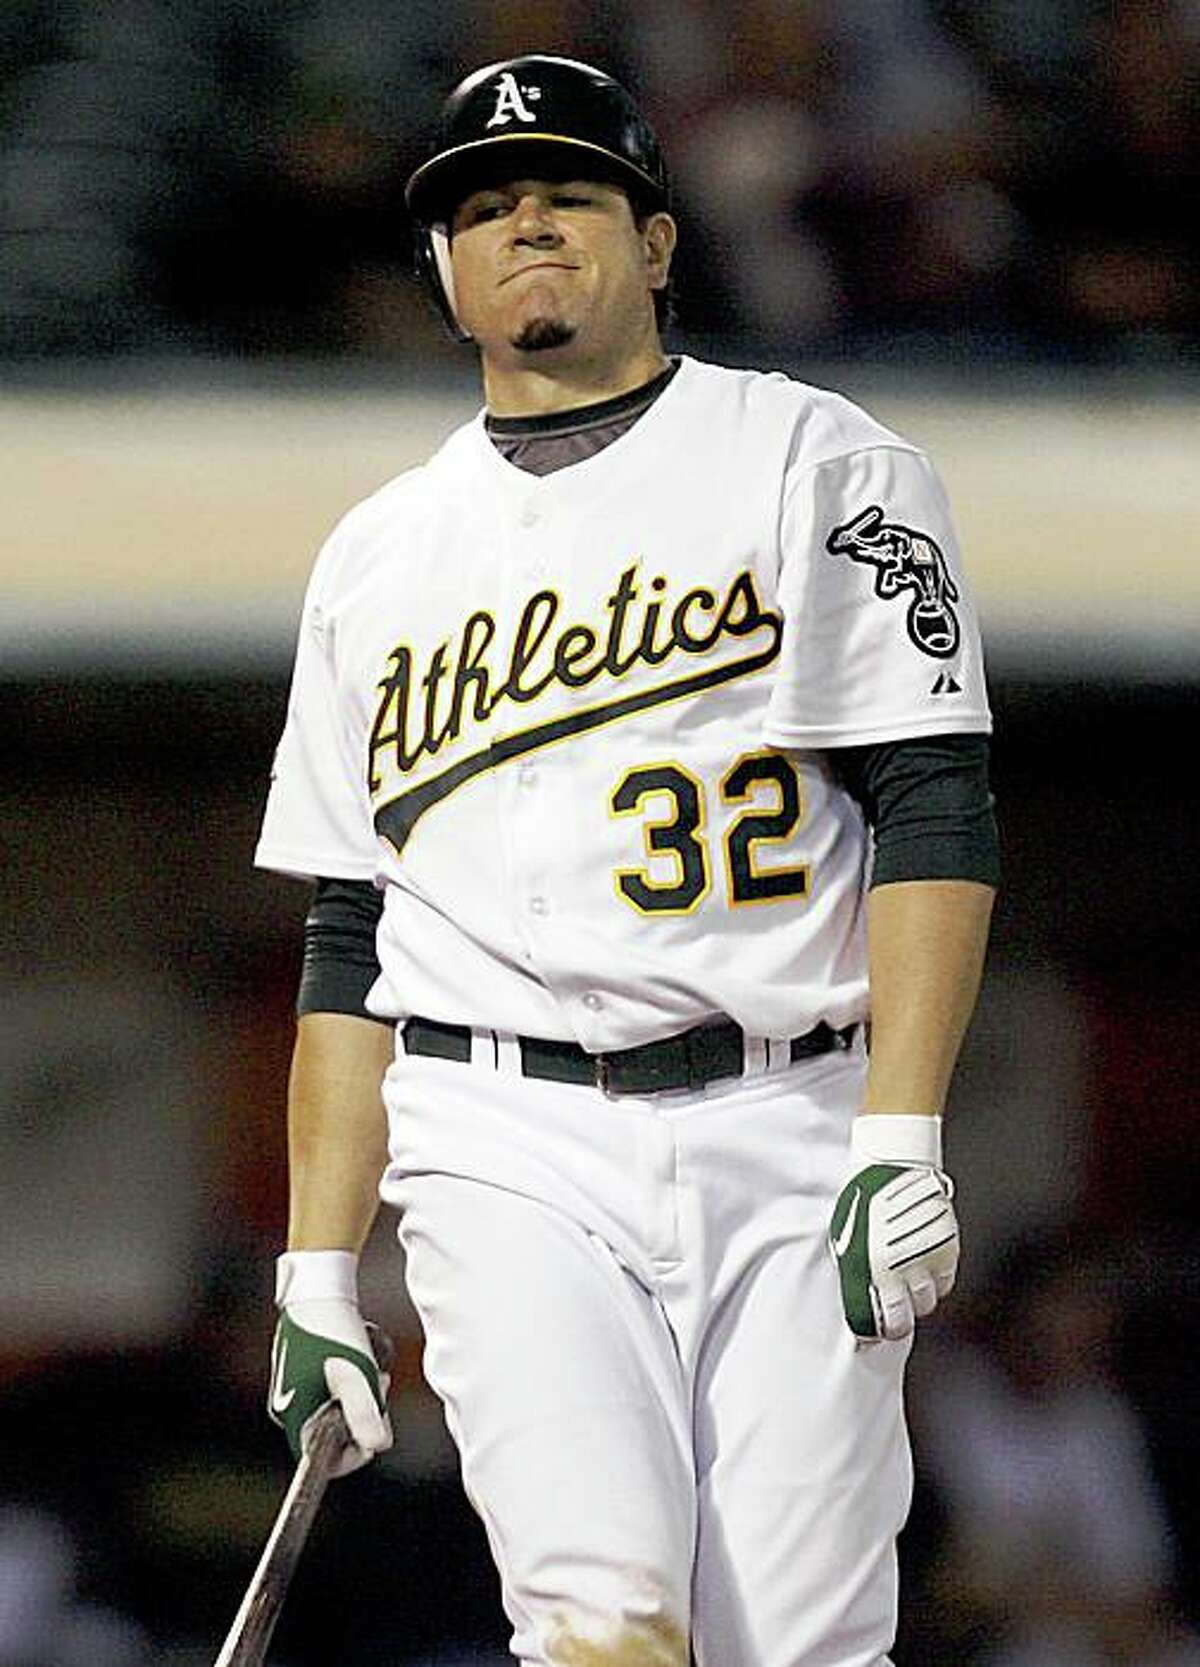 Oakland Athletics' Jack Cust reacts after striking out against Texas Rangers in the ninth inning of an MLB baseball game, Friday, Sept. 12, 2008 in Oakland, Calif. Rangers won 7-0. (AP Photo/Tony Avelar)